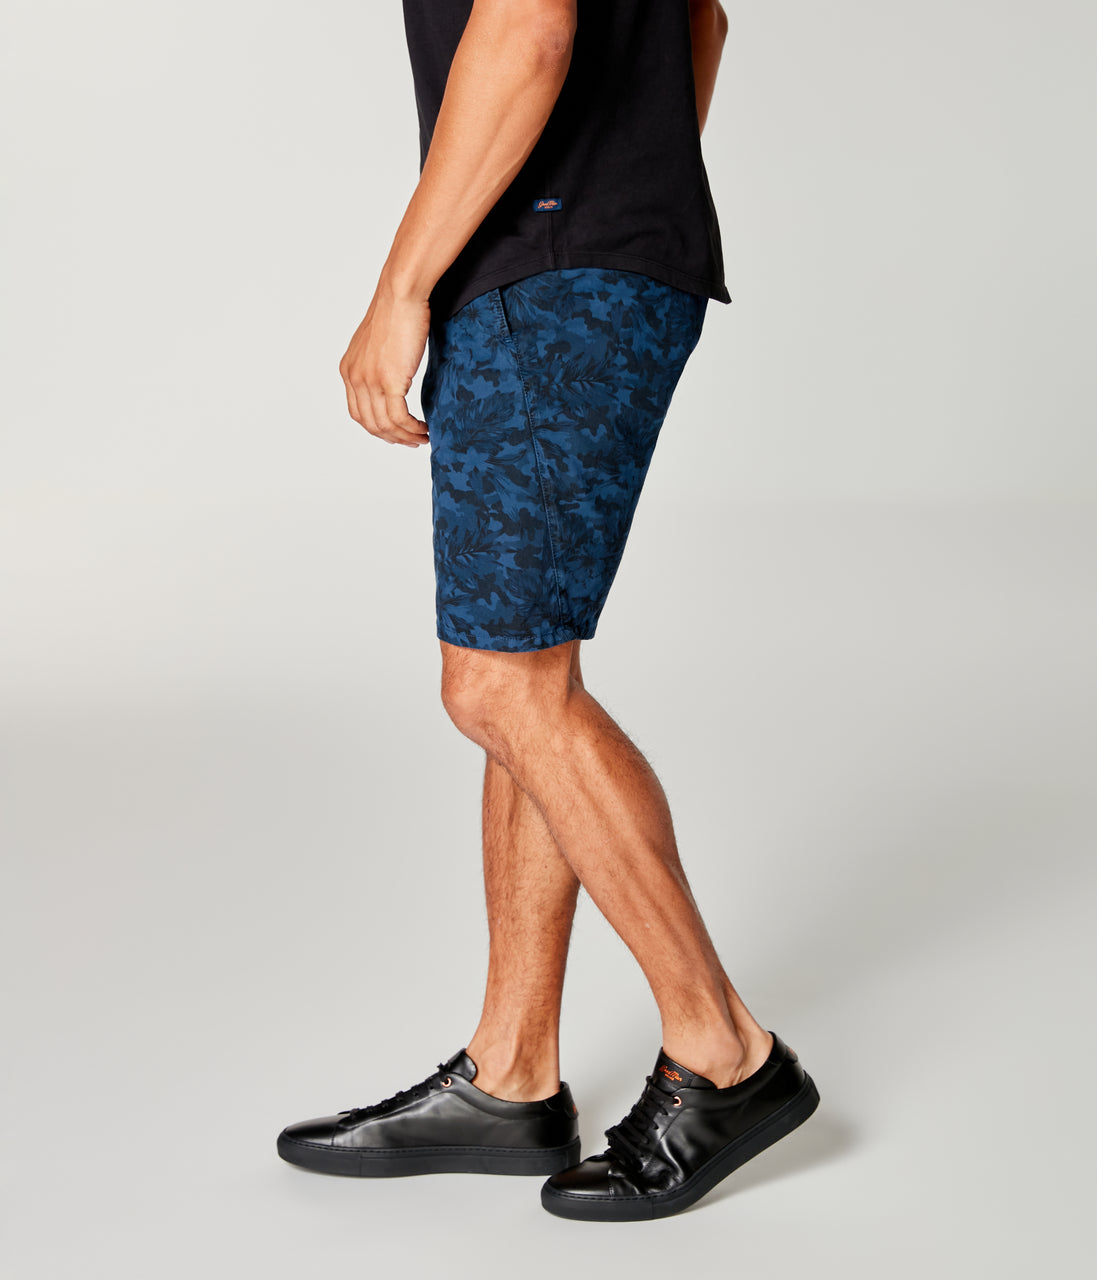 Monaco Stretch Twill Camo Wrap Short - Denim Blue - Good Man Brand - Monaco Stretch Twill Camo Wrap Short - Denim Blue